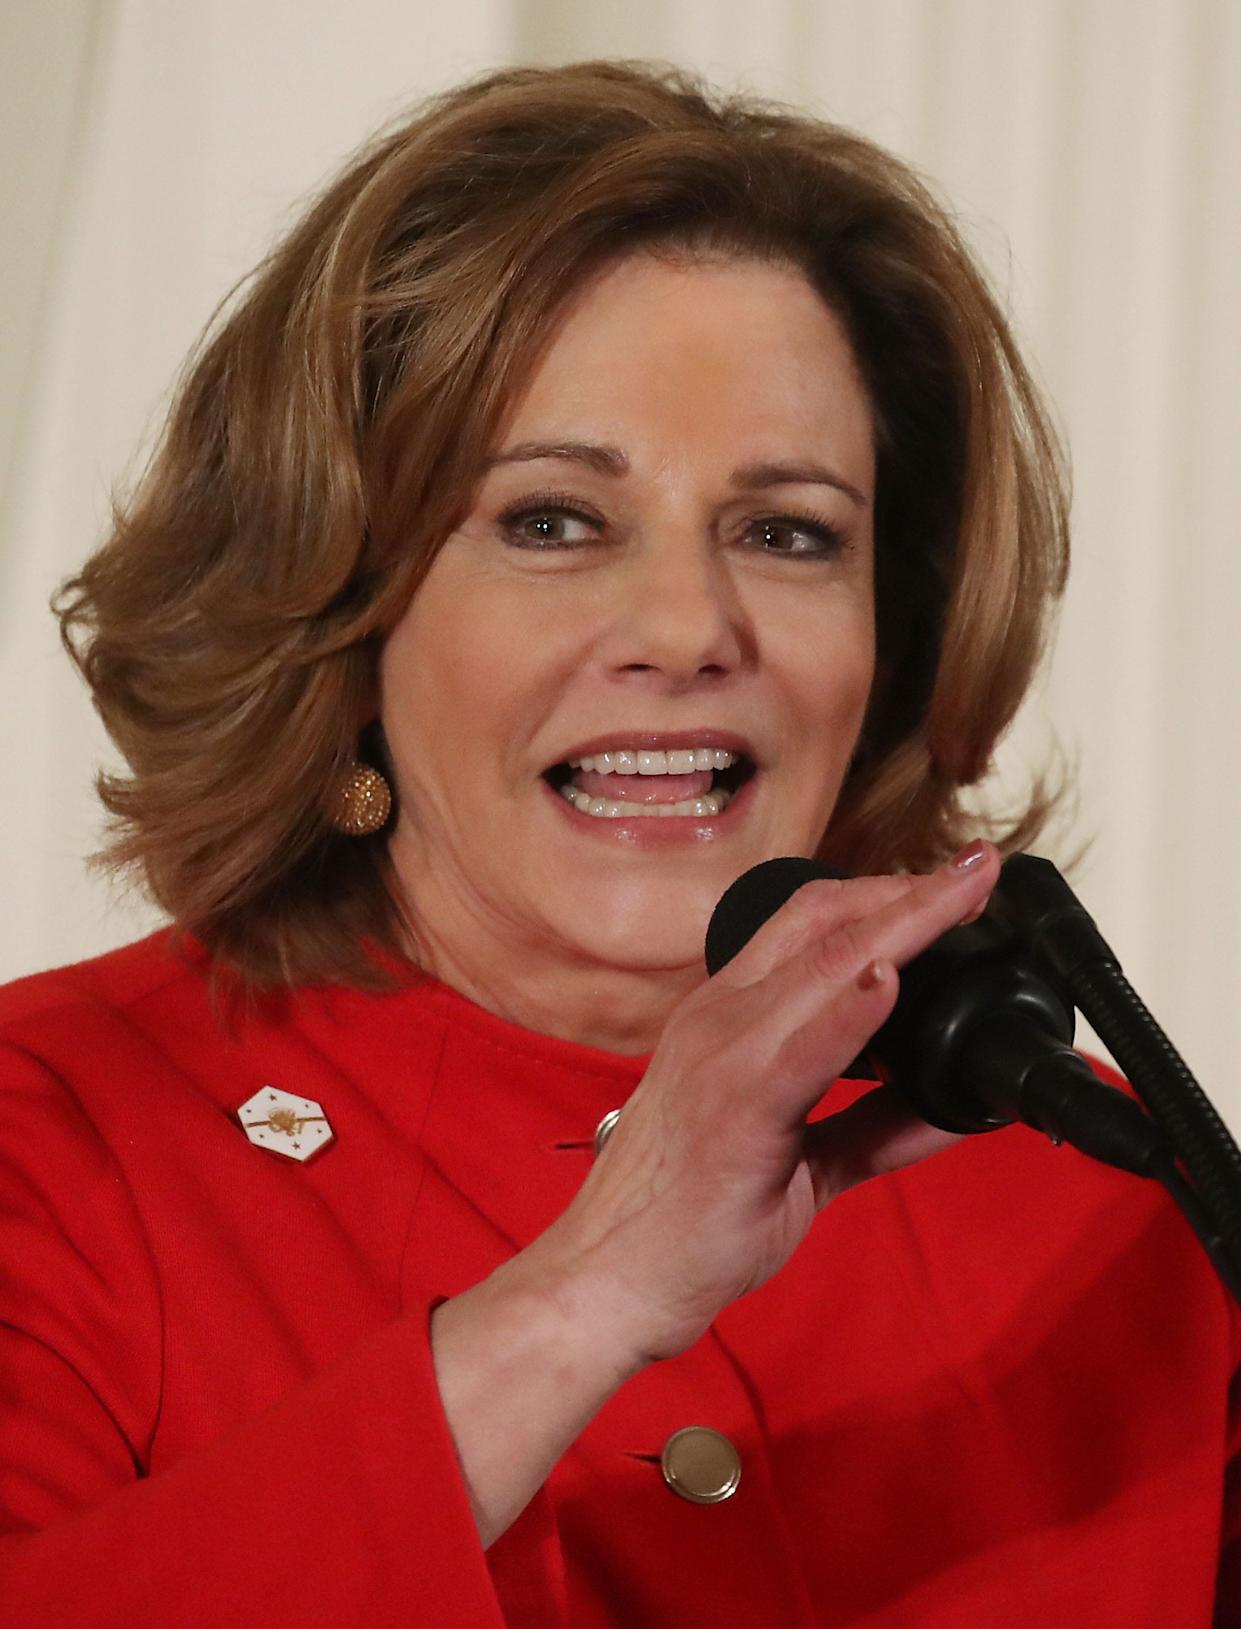 K.T. McFarland, who served as President Donald Trump's deputy national security adviser, pulled her nomination for U.S. ambassador to Singapore after she came under scrutiny by investigators looking into contacts between Trump's presidential campaign and Russian operatives.